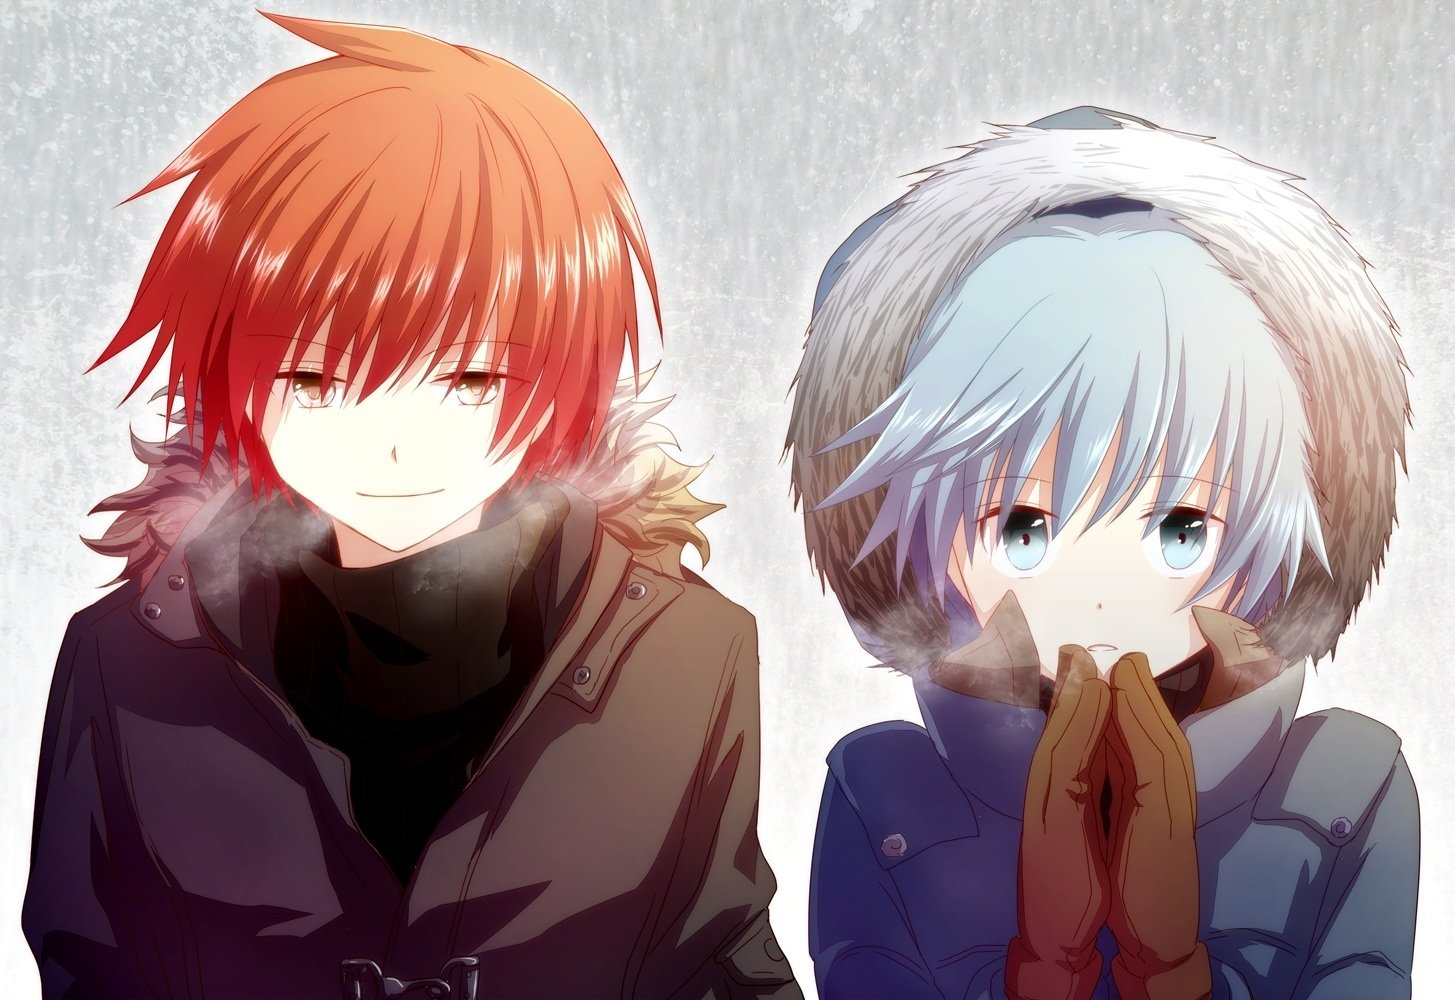 Hd wallpaper background image id653546 1455x1000 anime assassination classroom